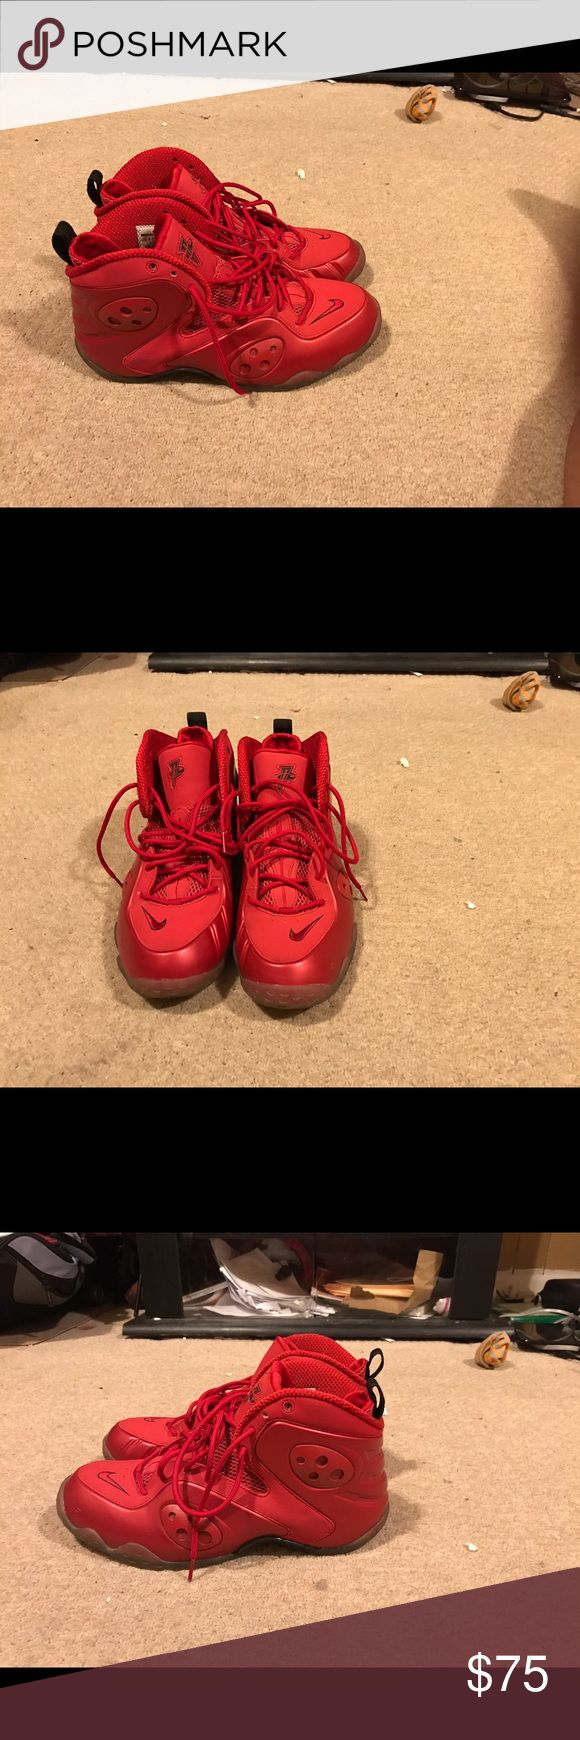 Nike Penny Zoom Rookie Red Red October size 10.5 Worn Once. 9/10 condition. Does not come WILL original box. Nike Shoes Sneakers